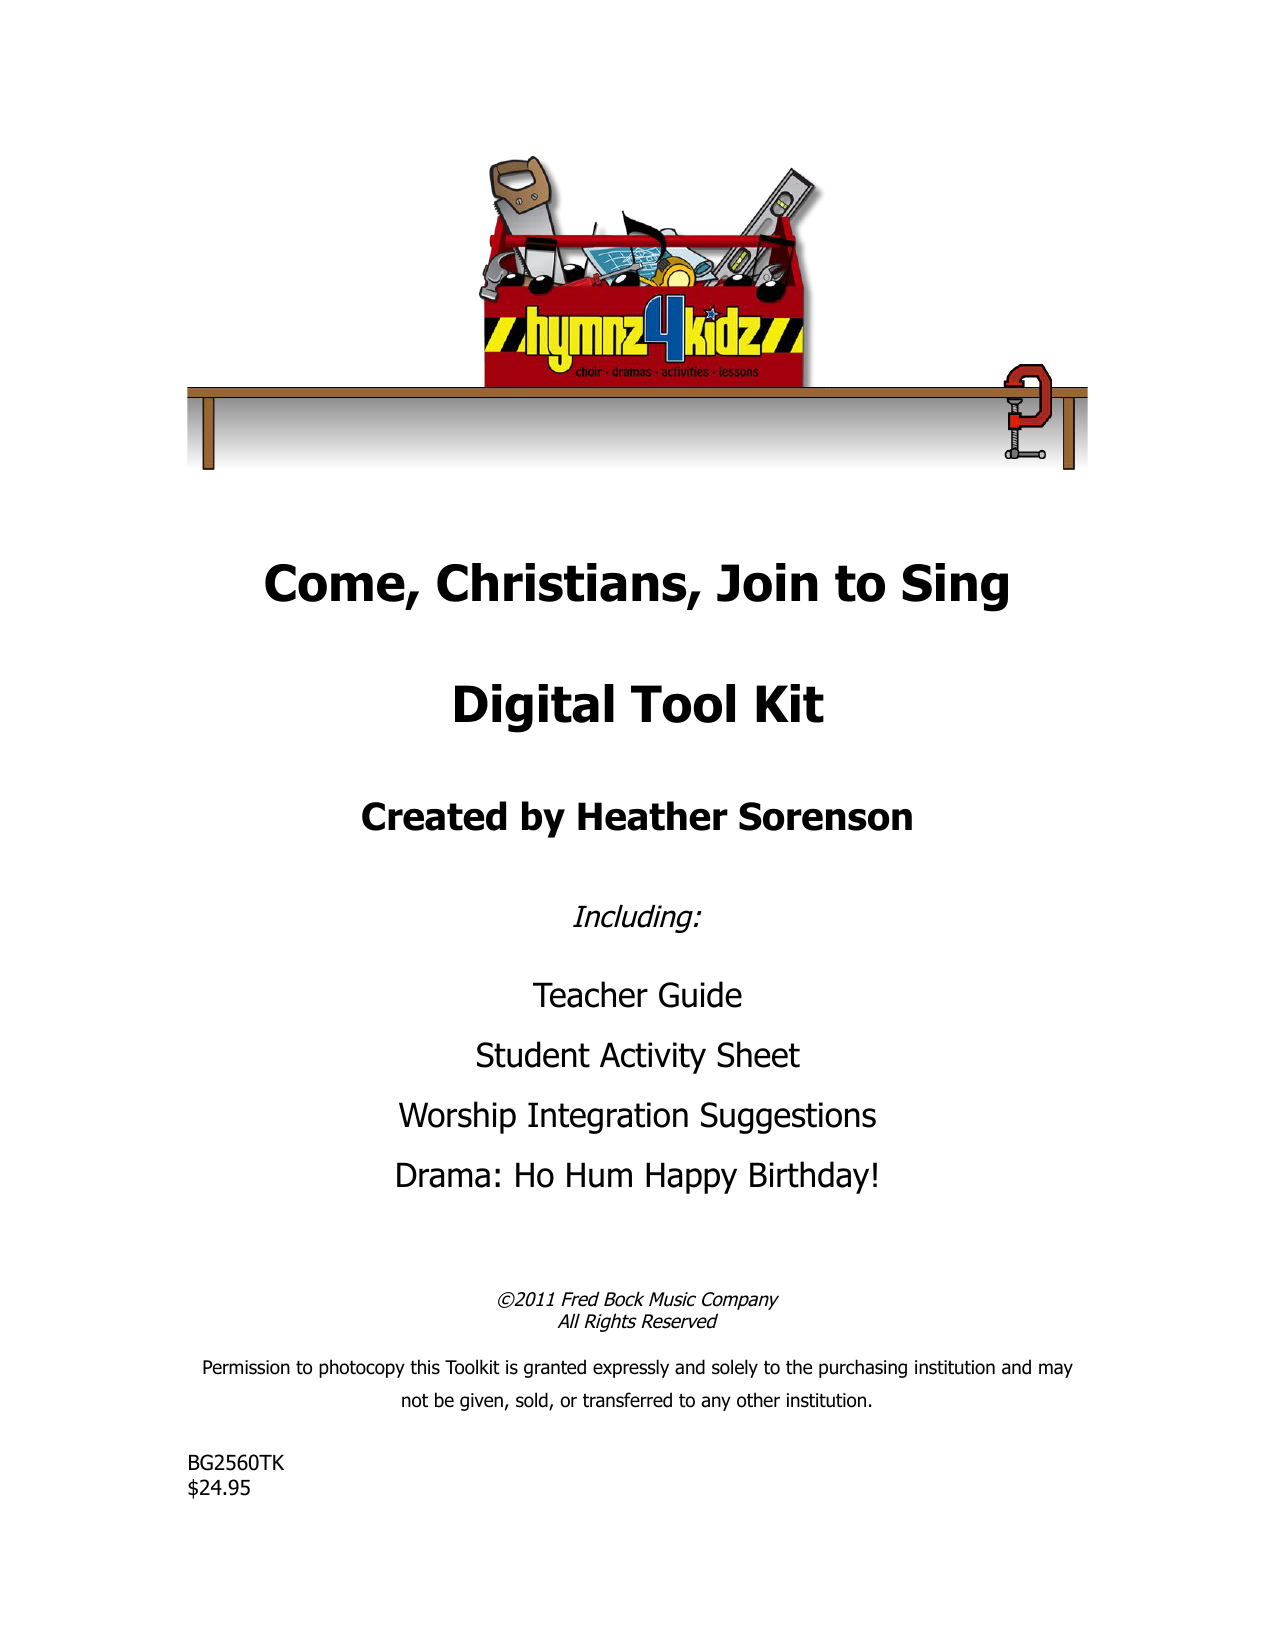 Come, Christians, Join To Sing (Choir Tool Kit)